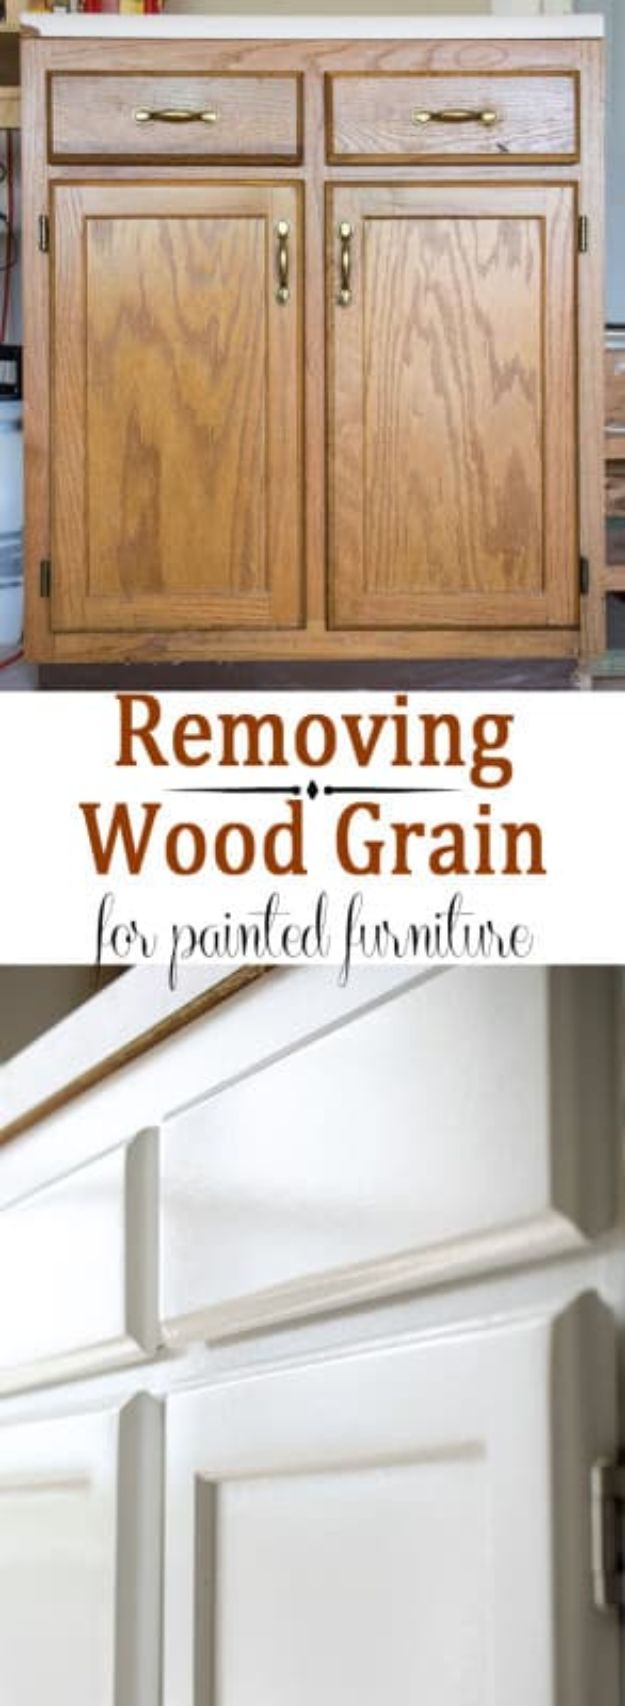 Cool Woodworking Tips - Remove Wood Grain Texture - Easy Woodworking Ideas, Woodworking Tips and Tricks, Woodworking Tips For Beginners, Basic Guide For Woodworking - Refinishing Wood, Sanding and Staining, Cleaning Wood and Upcycling Pallets - Tips for Wooden Craft Projects http://diyjoy.com/diy-woodworking-ideas